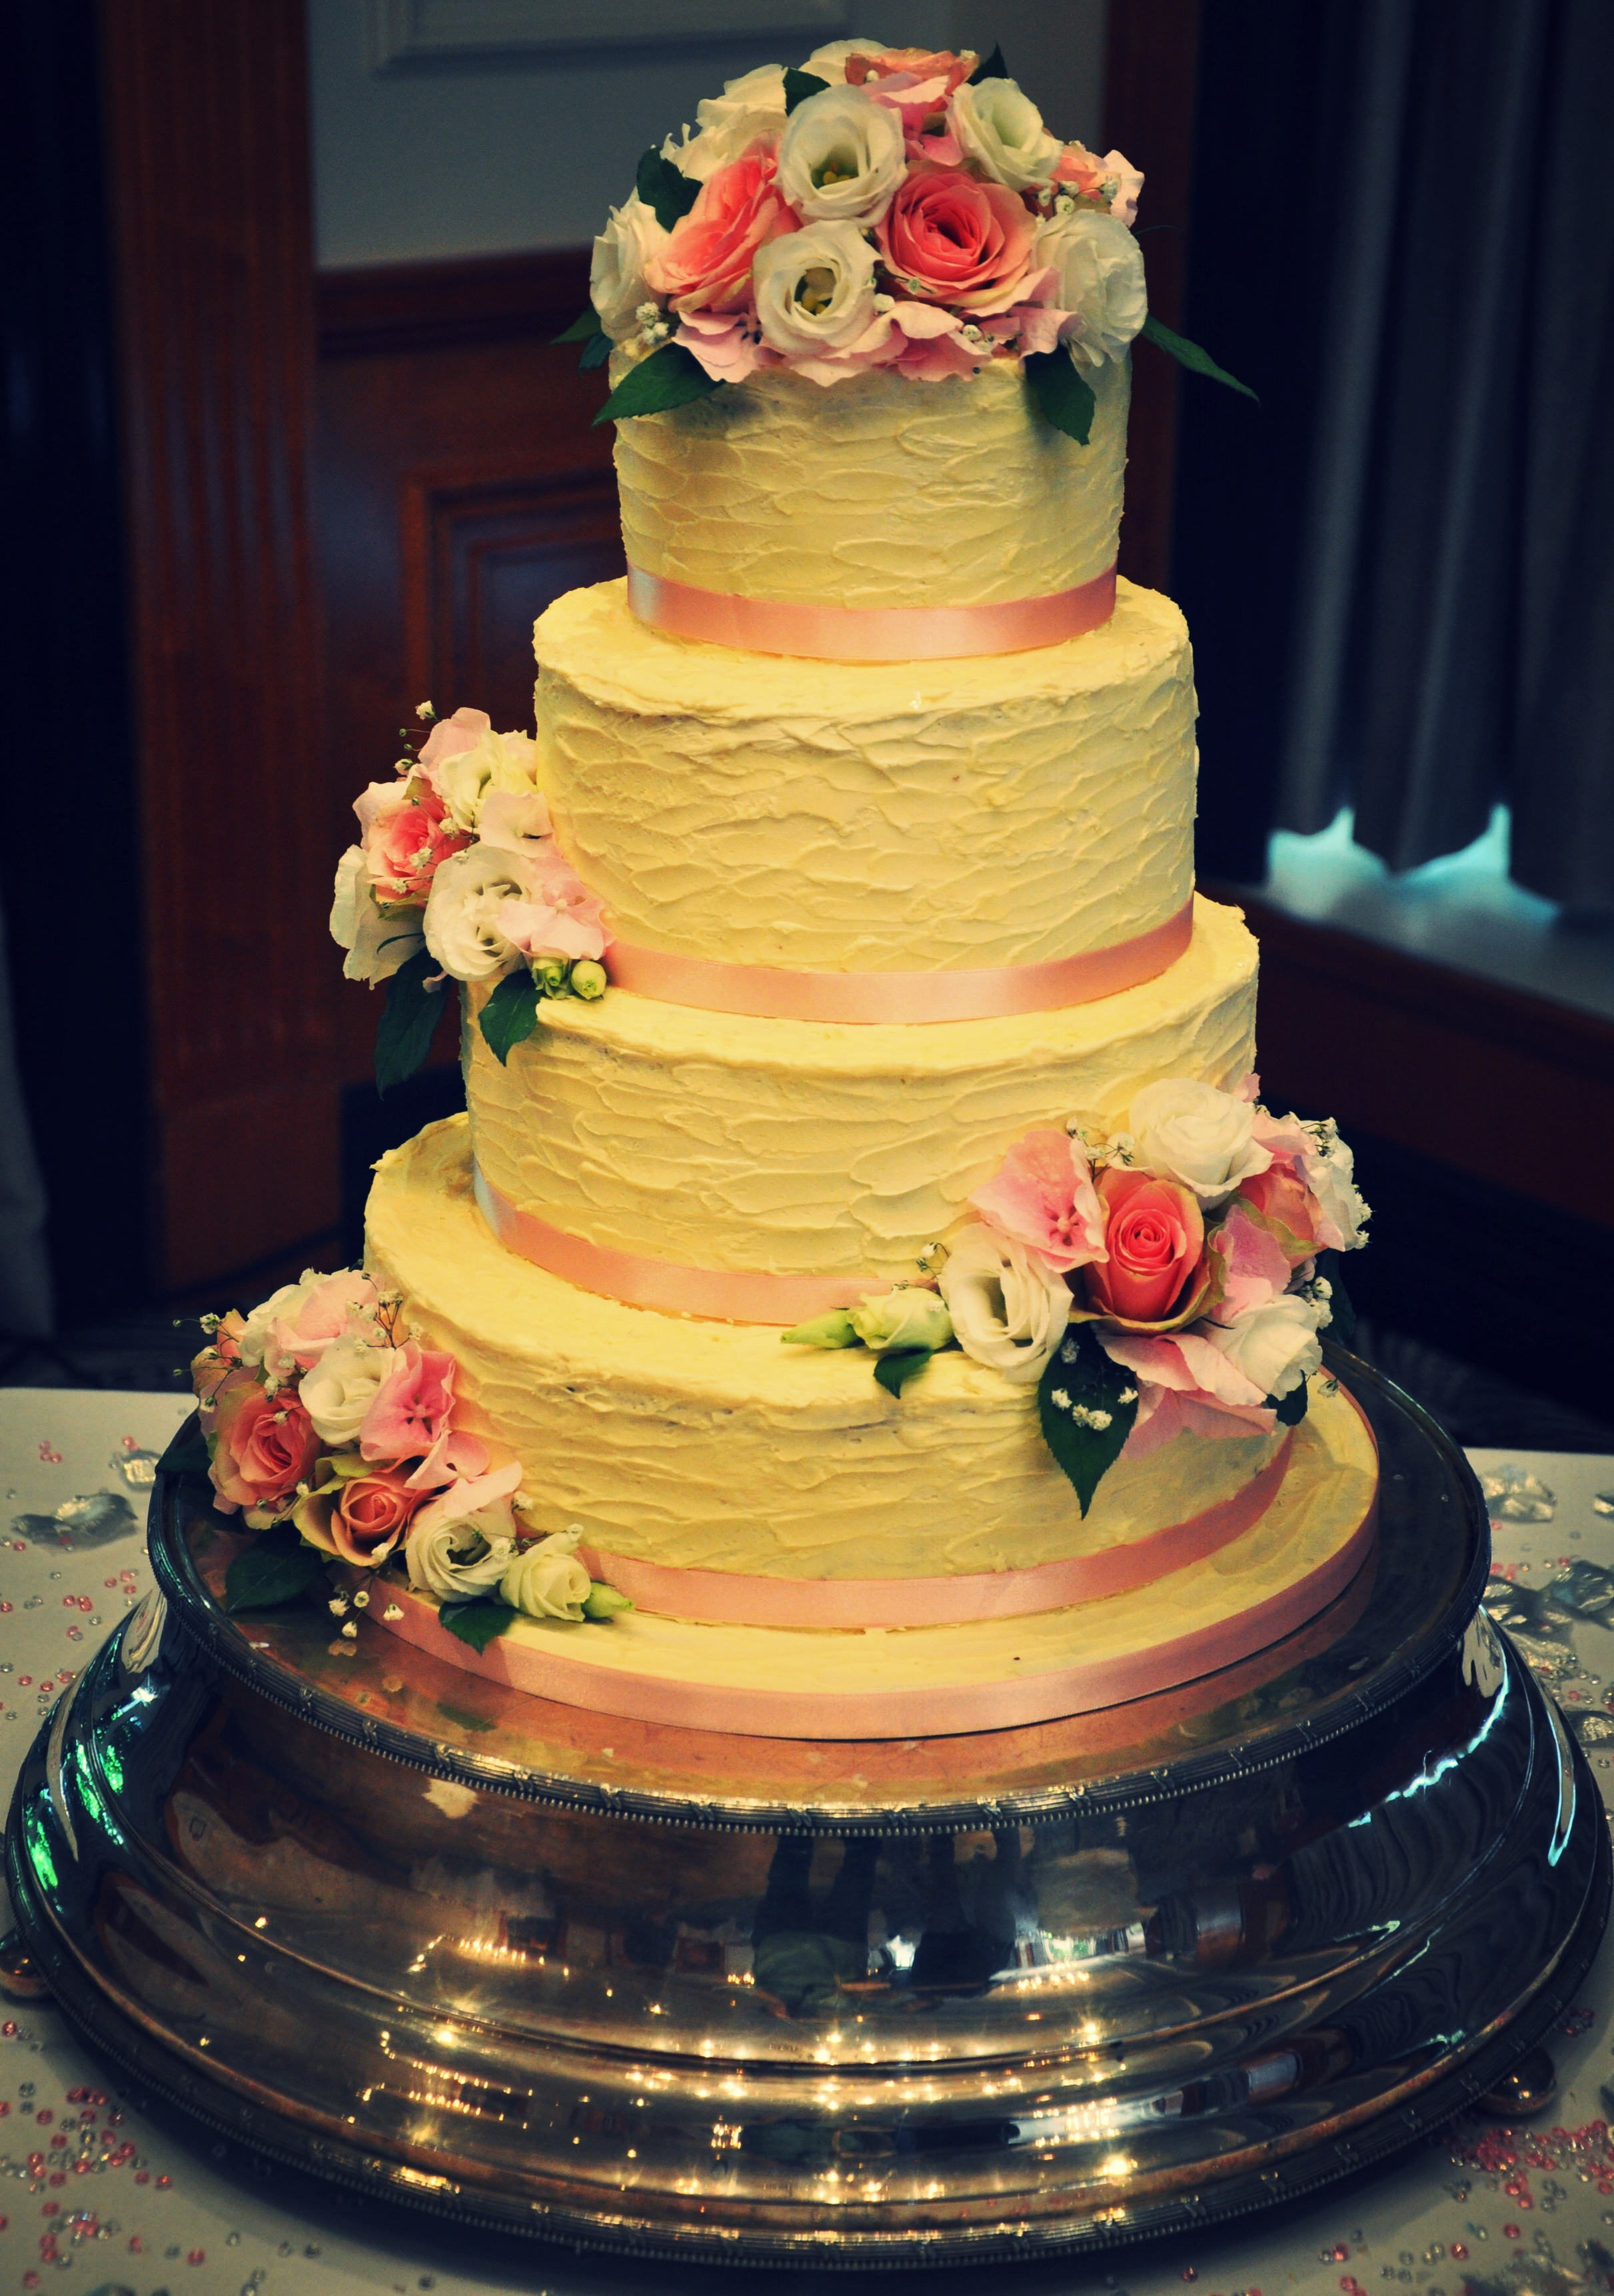 Four tier wedding cake - Beautiful four tier wedding cake in three layers with a stylish buttercream finish decorated with fresh flowers.